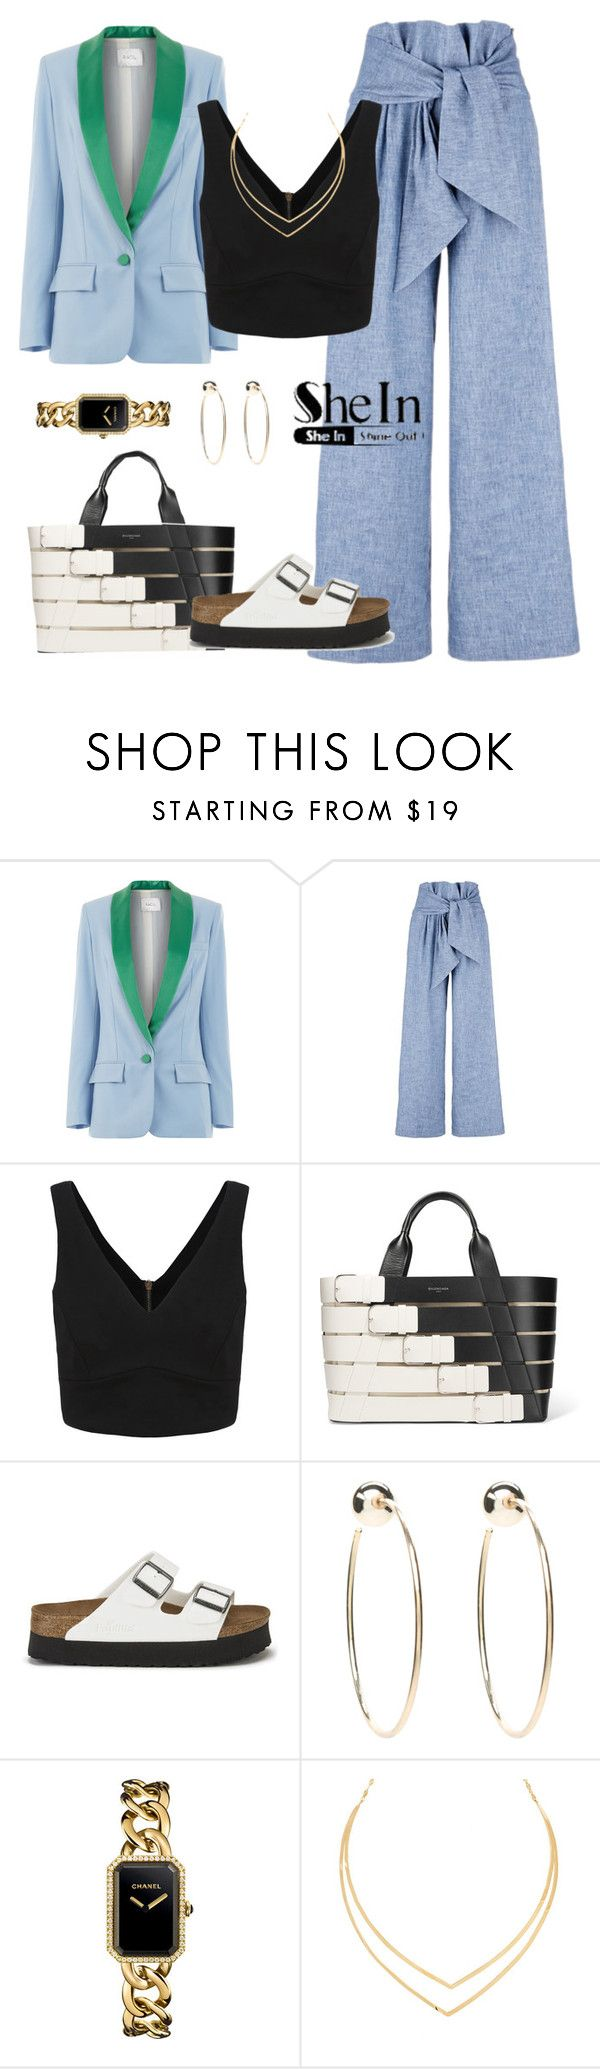 """Casual"" by yinggao ❤ liked on Polyvore featuring Racil, MSGM, Balenciaga, Birkenstock, Bebe, Chanel, Lana, Sheinside, casualoutfit and shein"